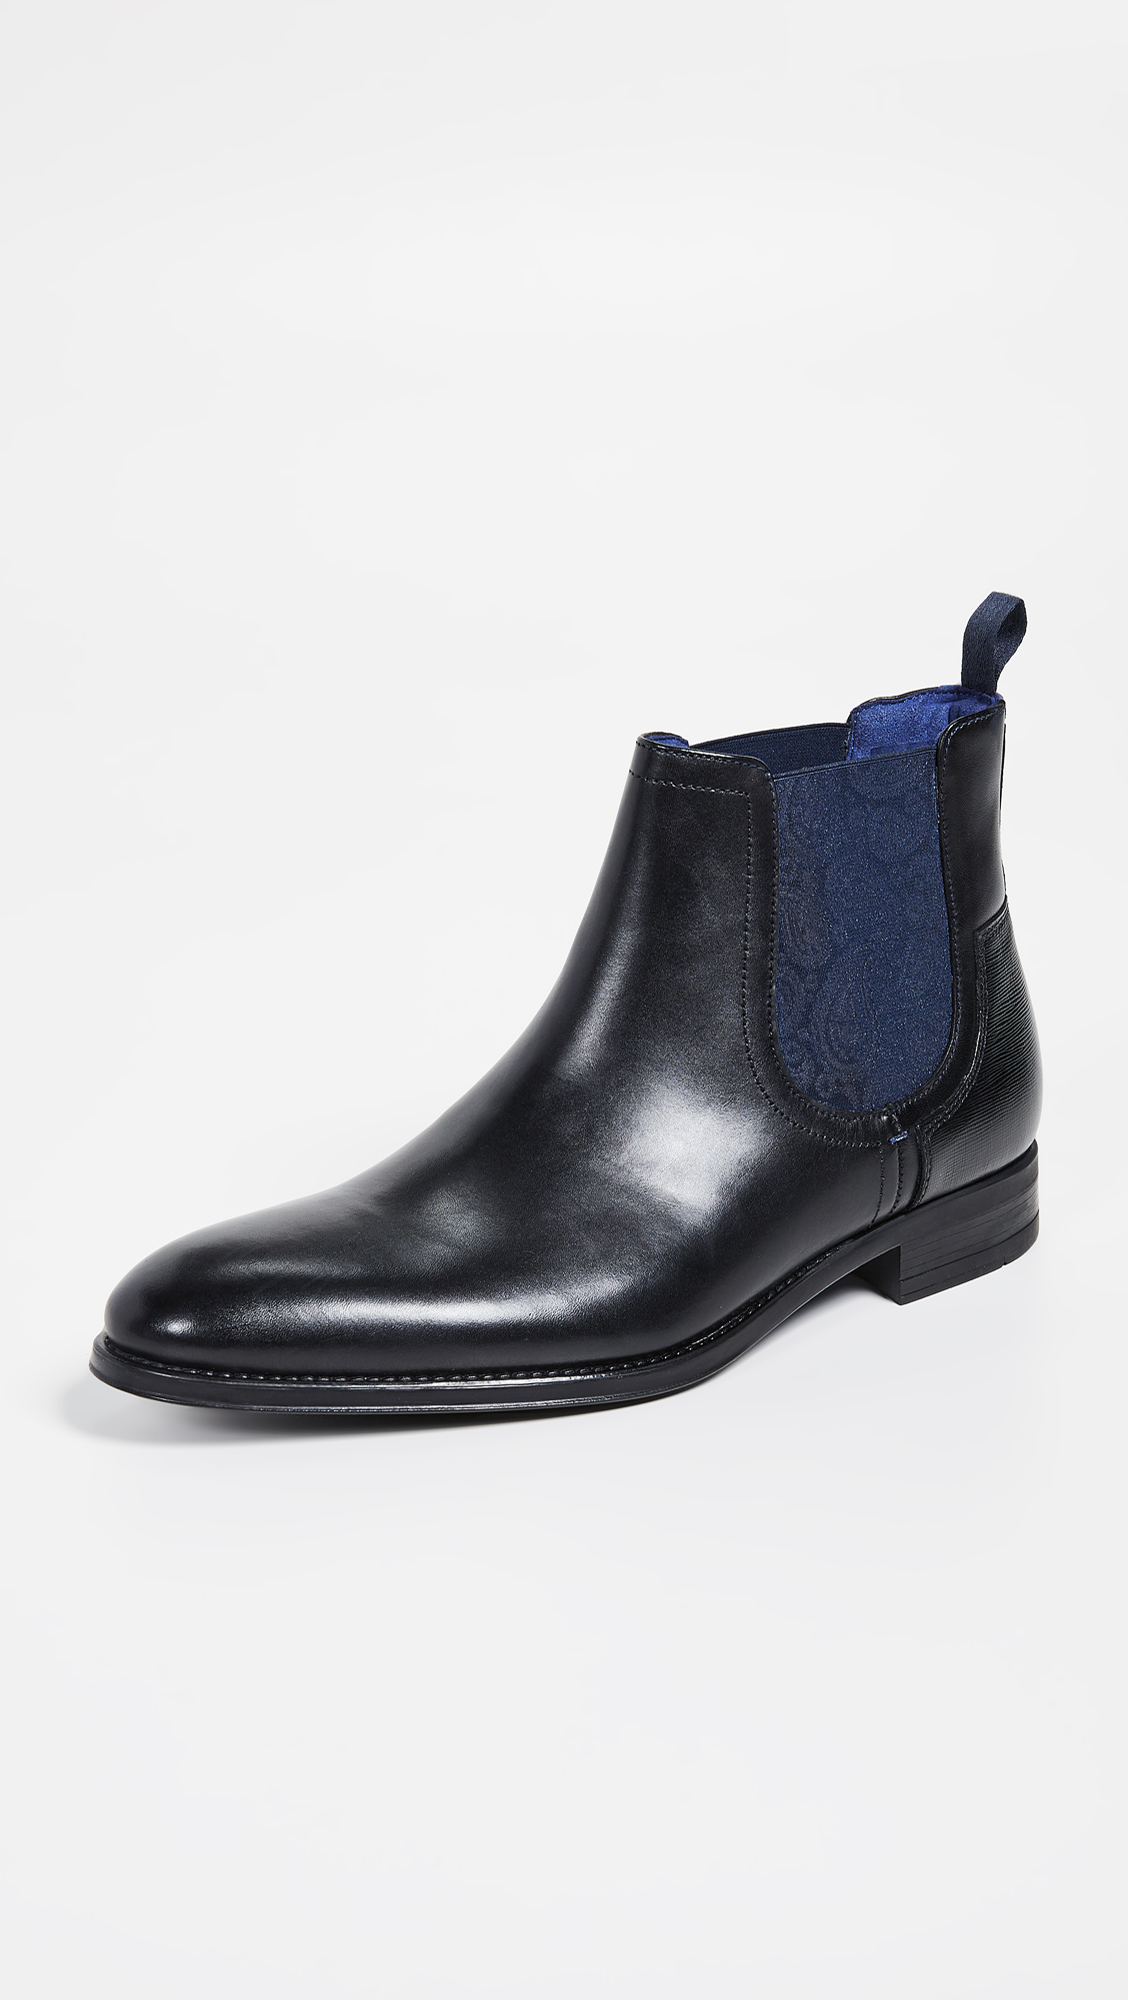 e41c4ef9b73 Ted Baker Travic Chelsea Boots | EAST DANE